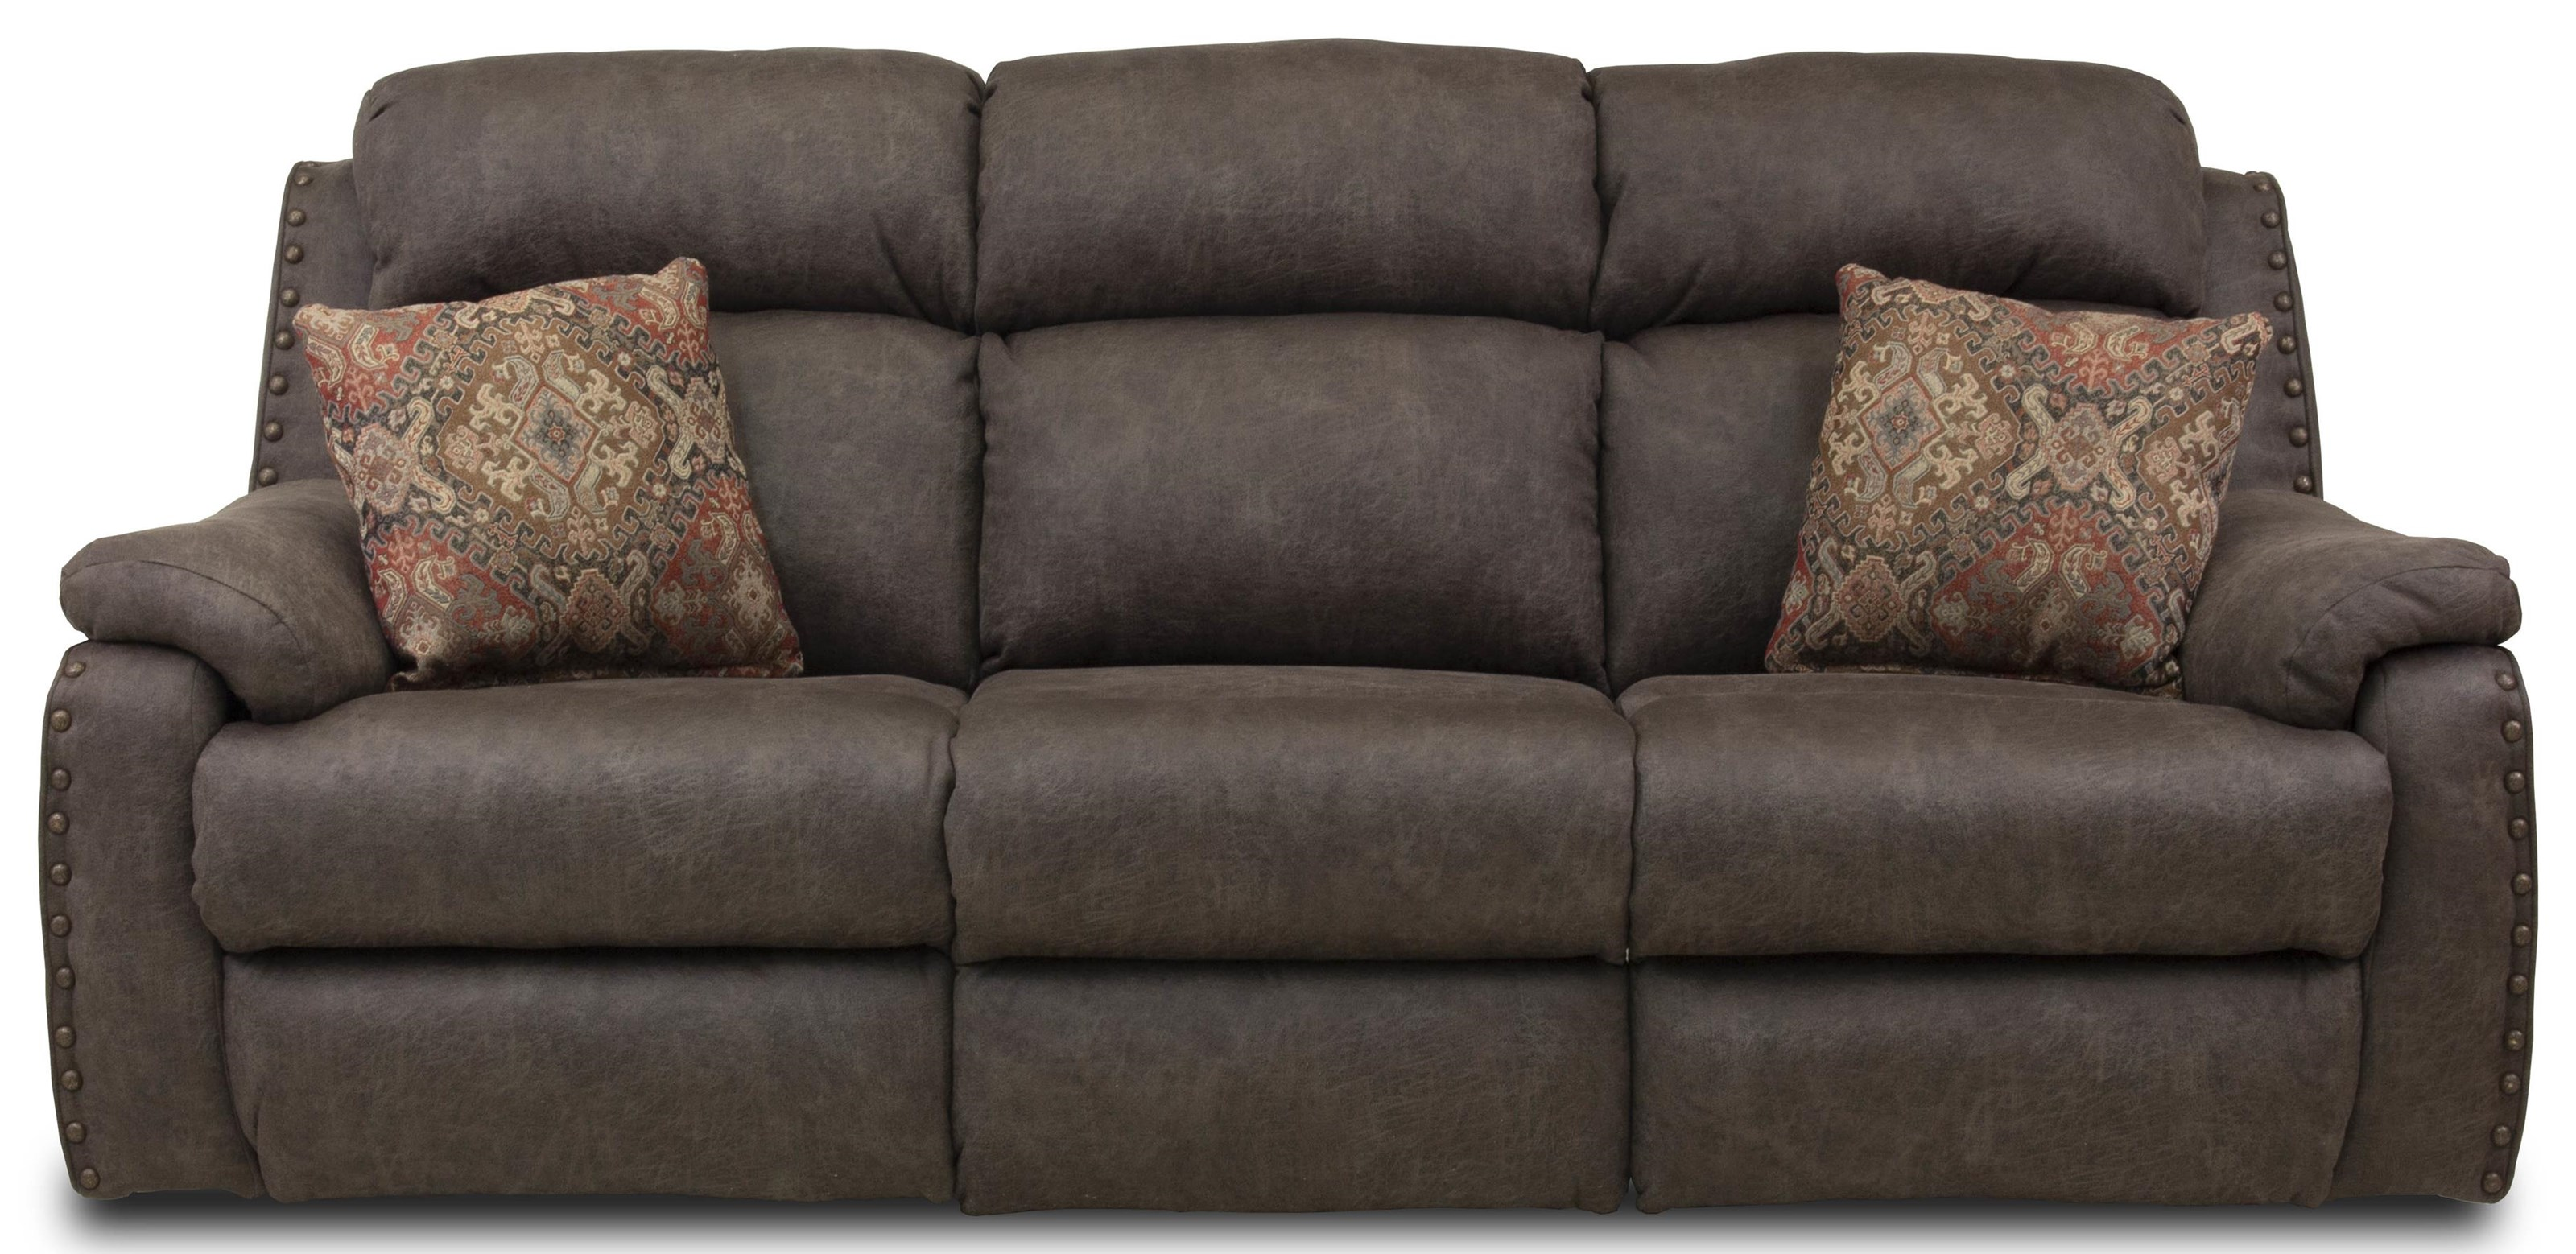 Double Reclining Sofa with Pillows and Power Headrests